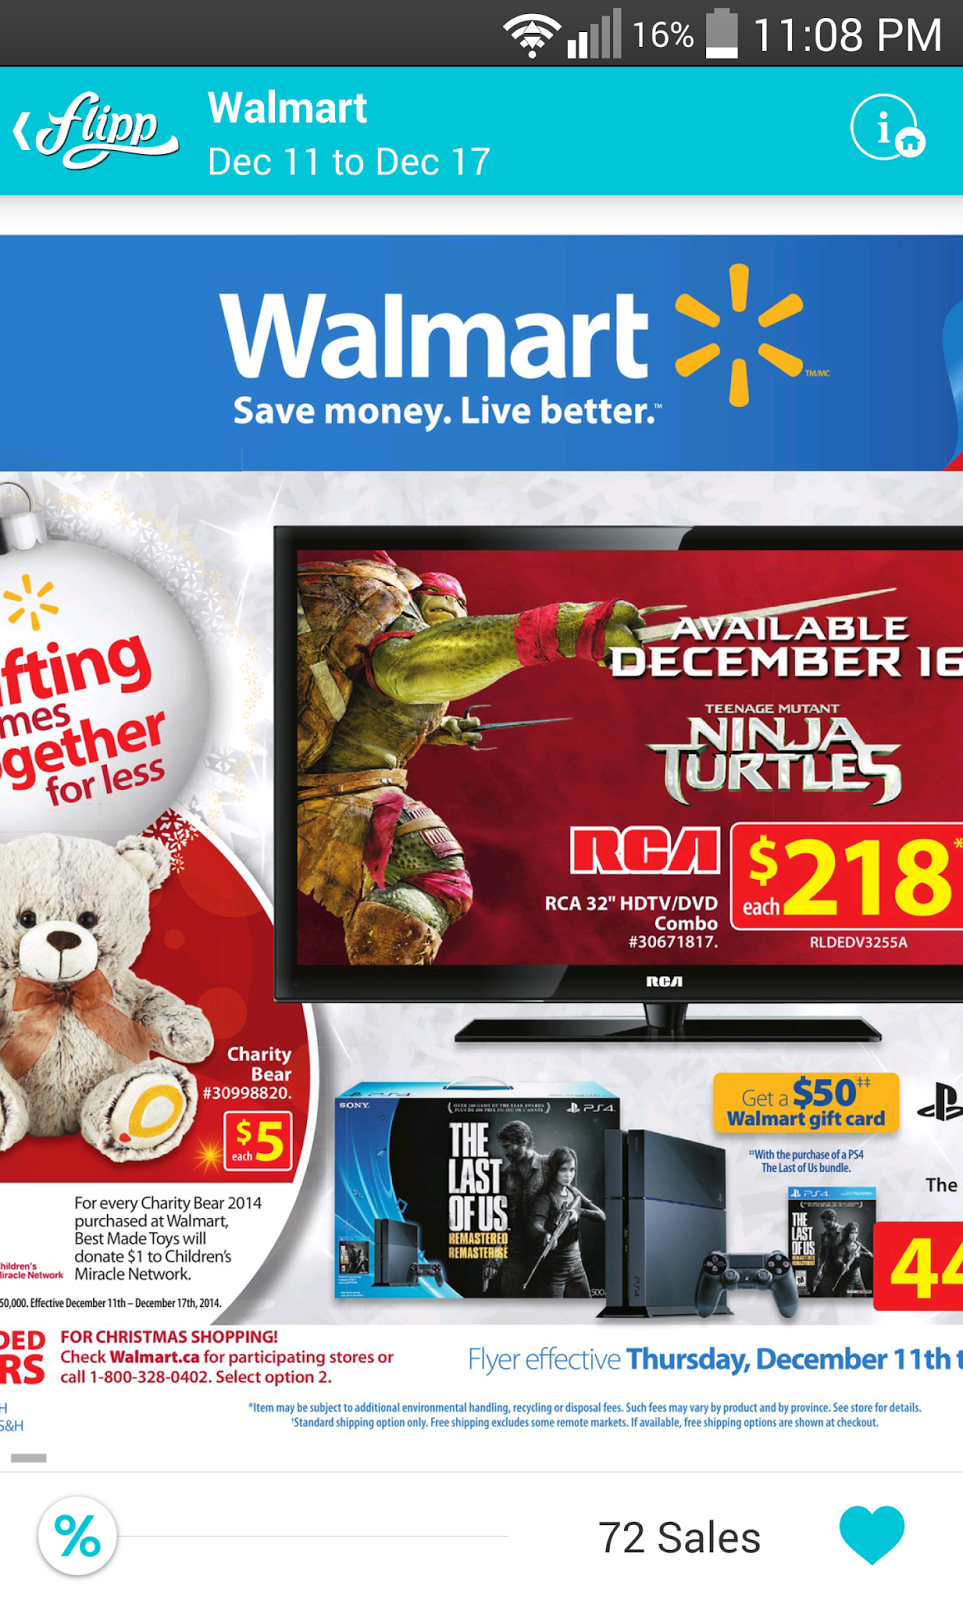 Affordable Gifts From Top Brands at Walmart #Flipp4Holidays